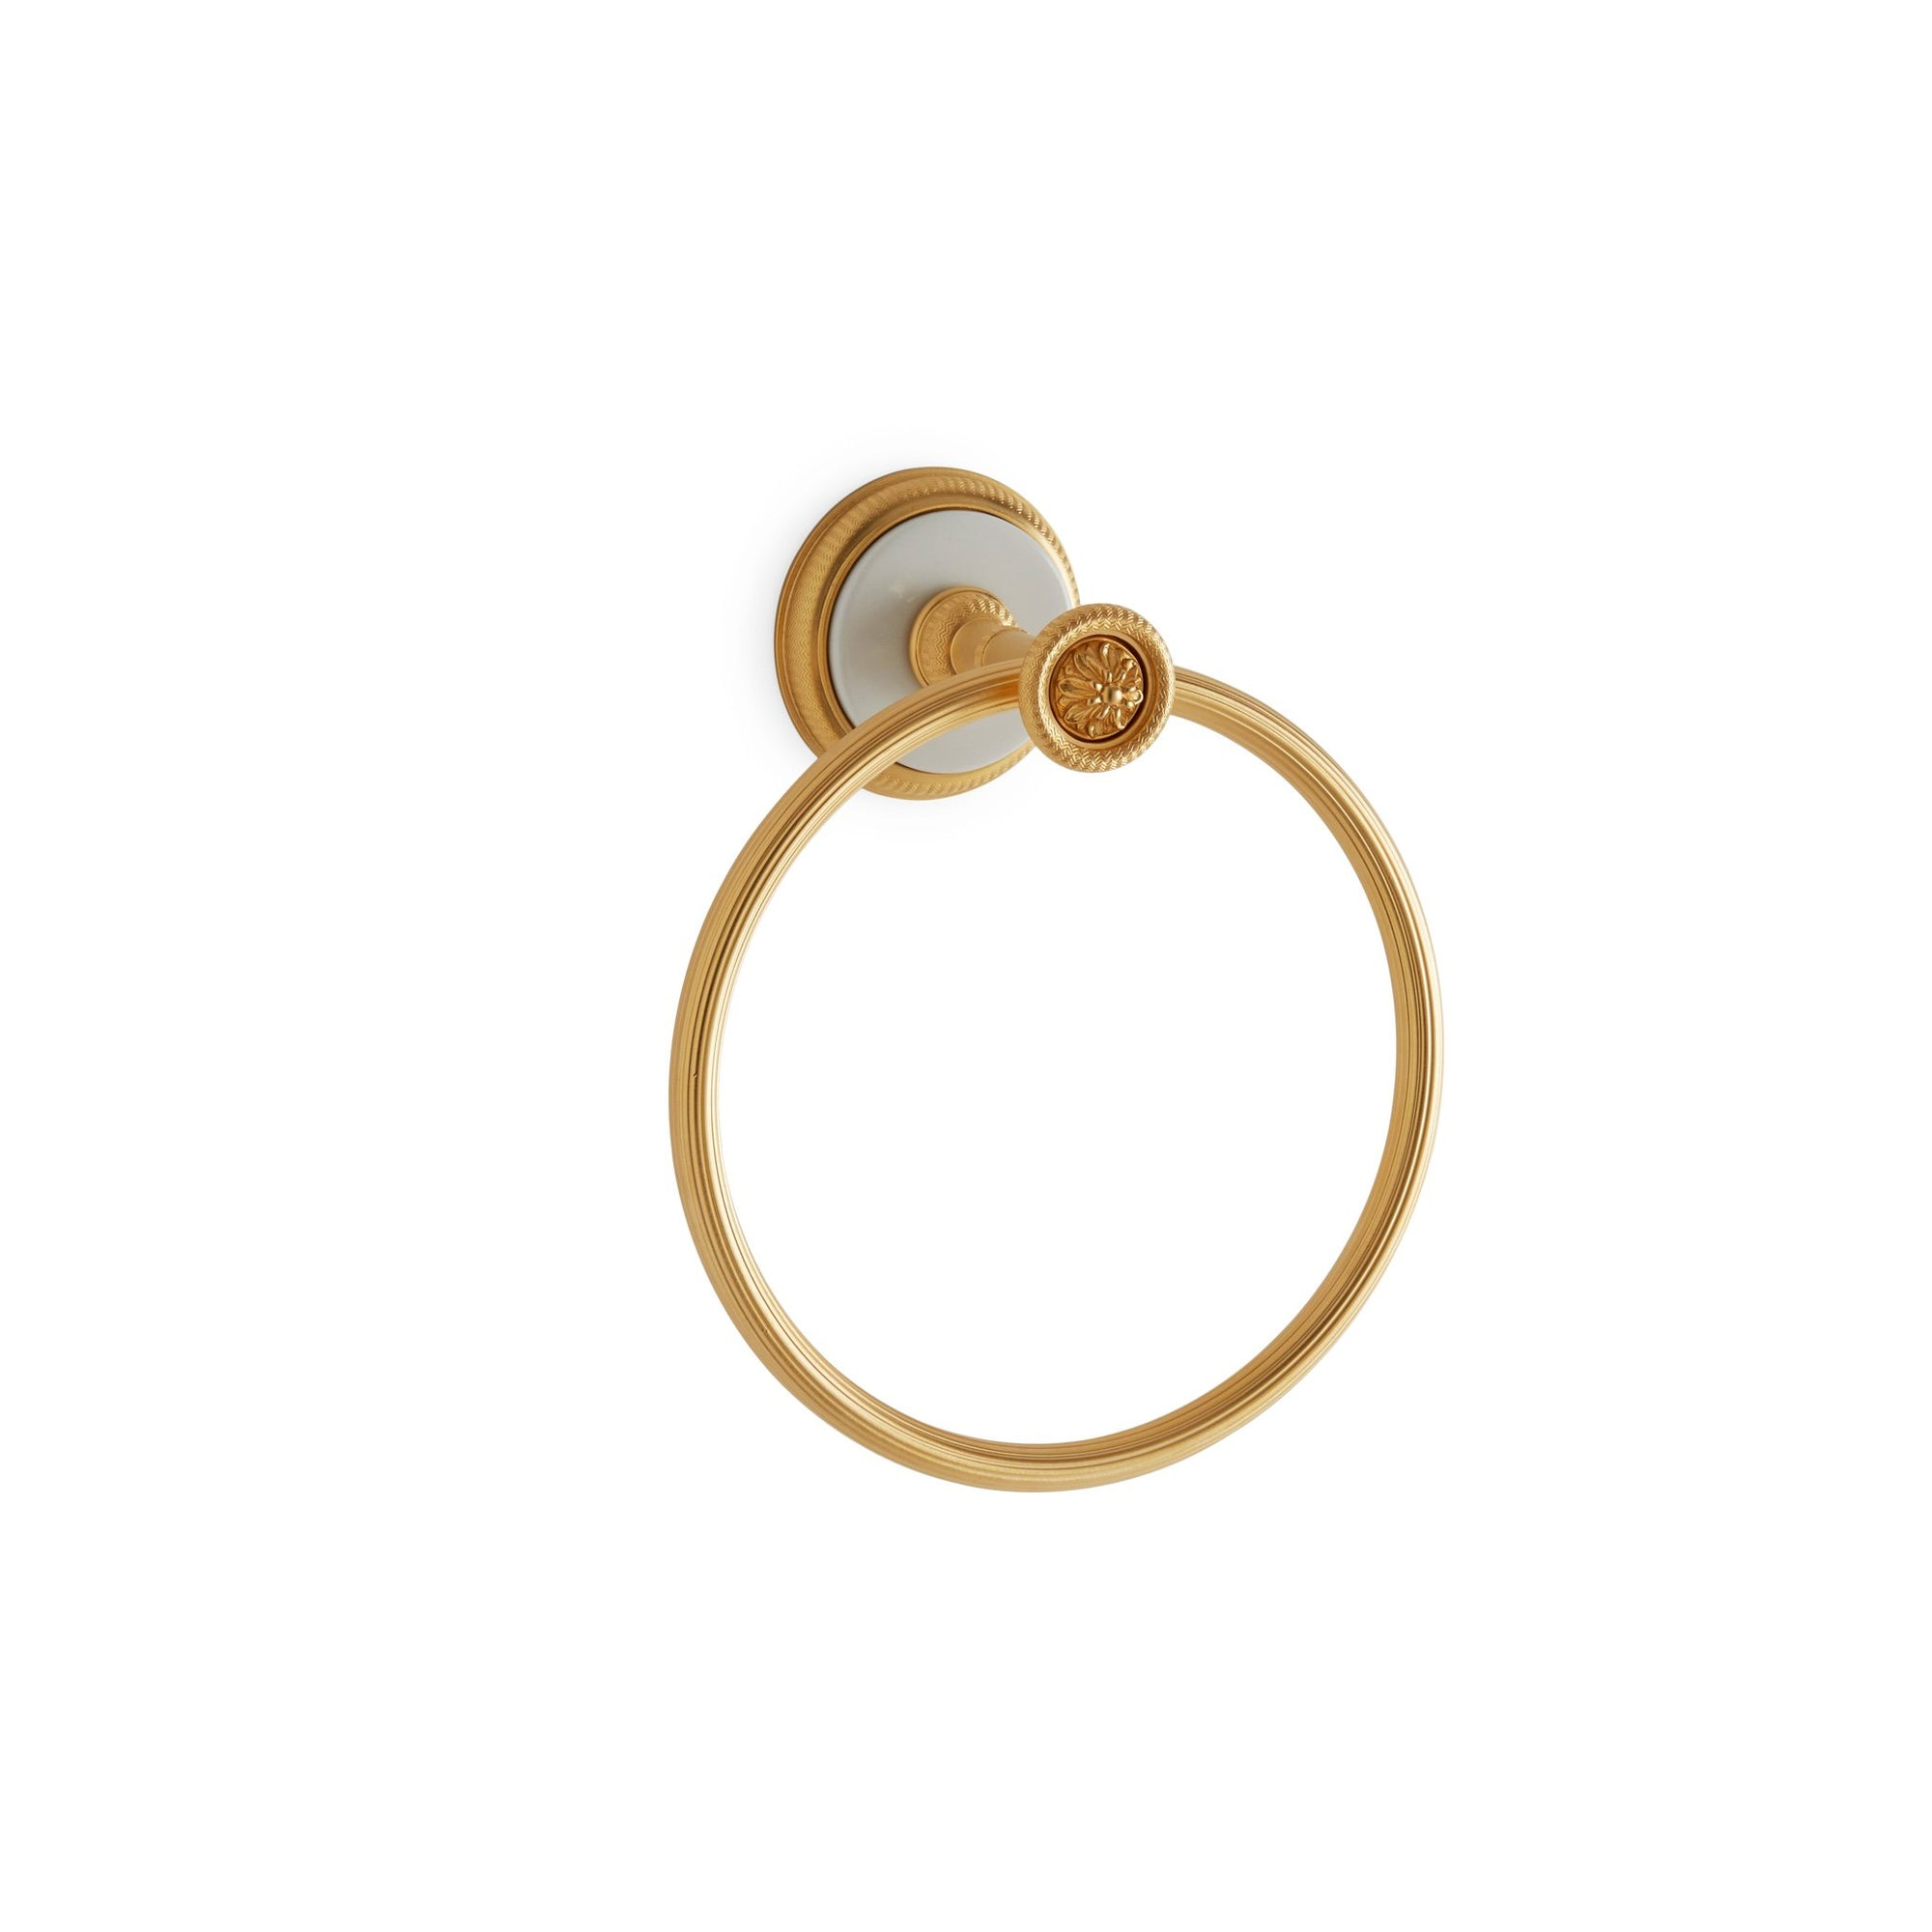 3442-WHT-GP Sherle Wagner International Knurled Towel Ring with White insert in Gold Plate metal finish